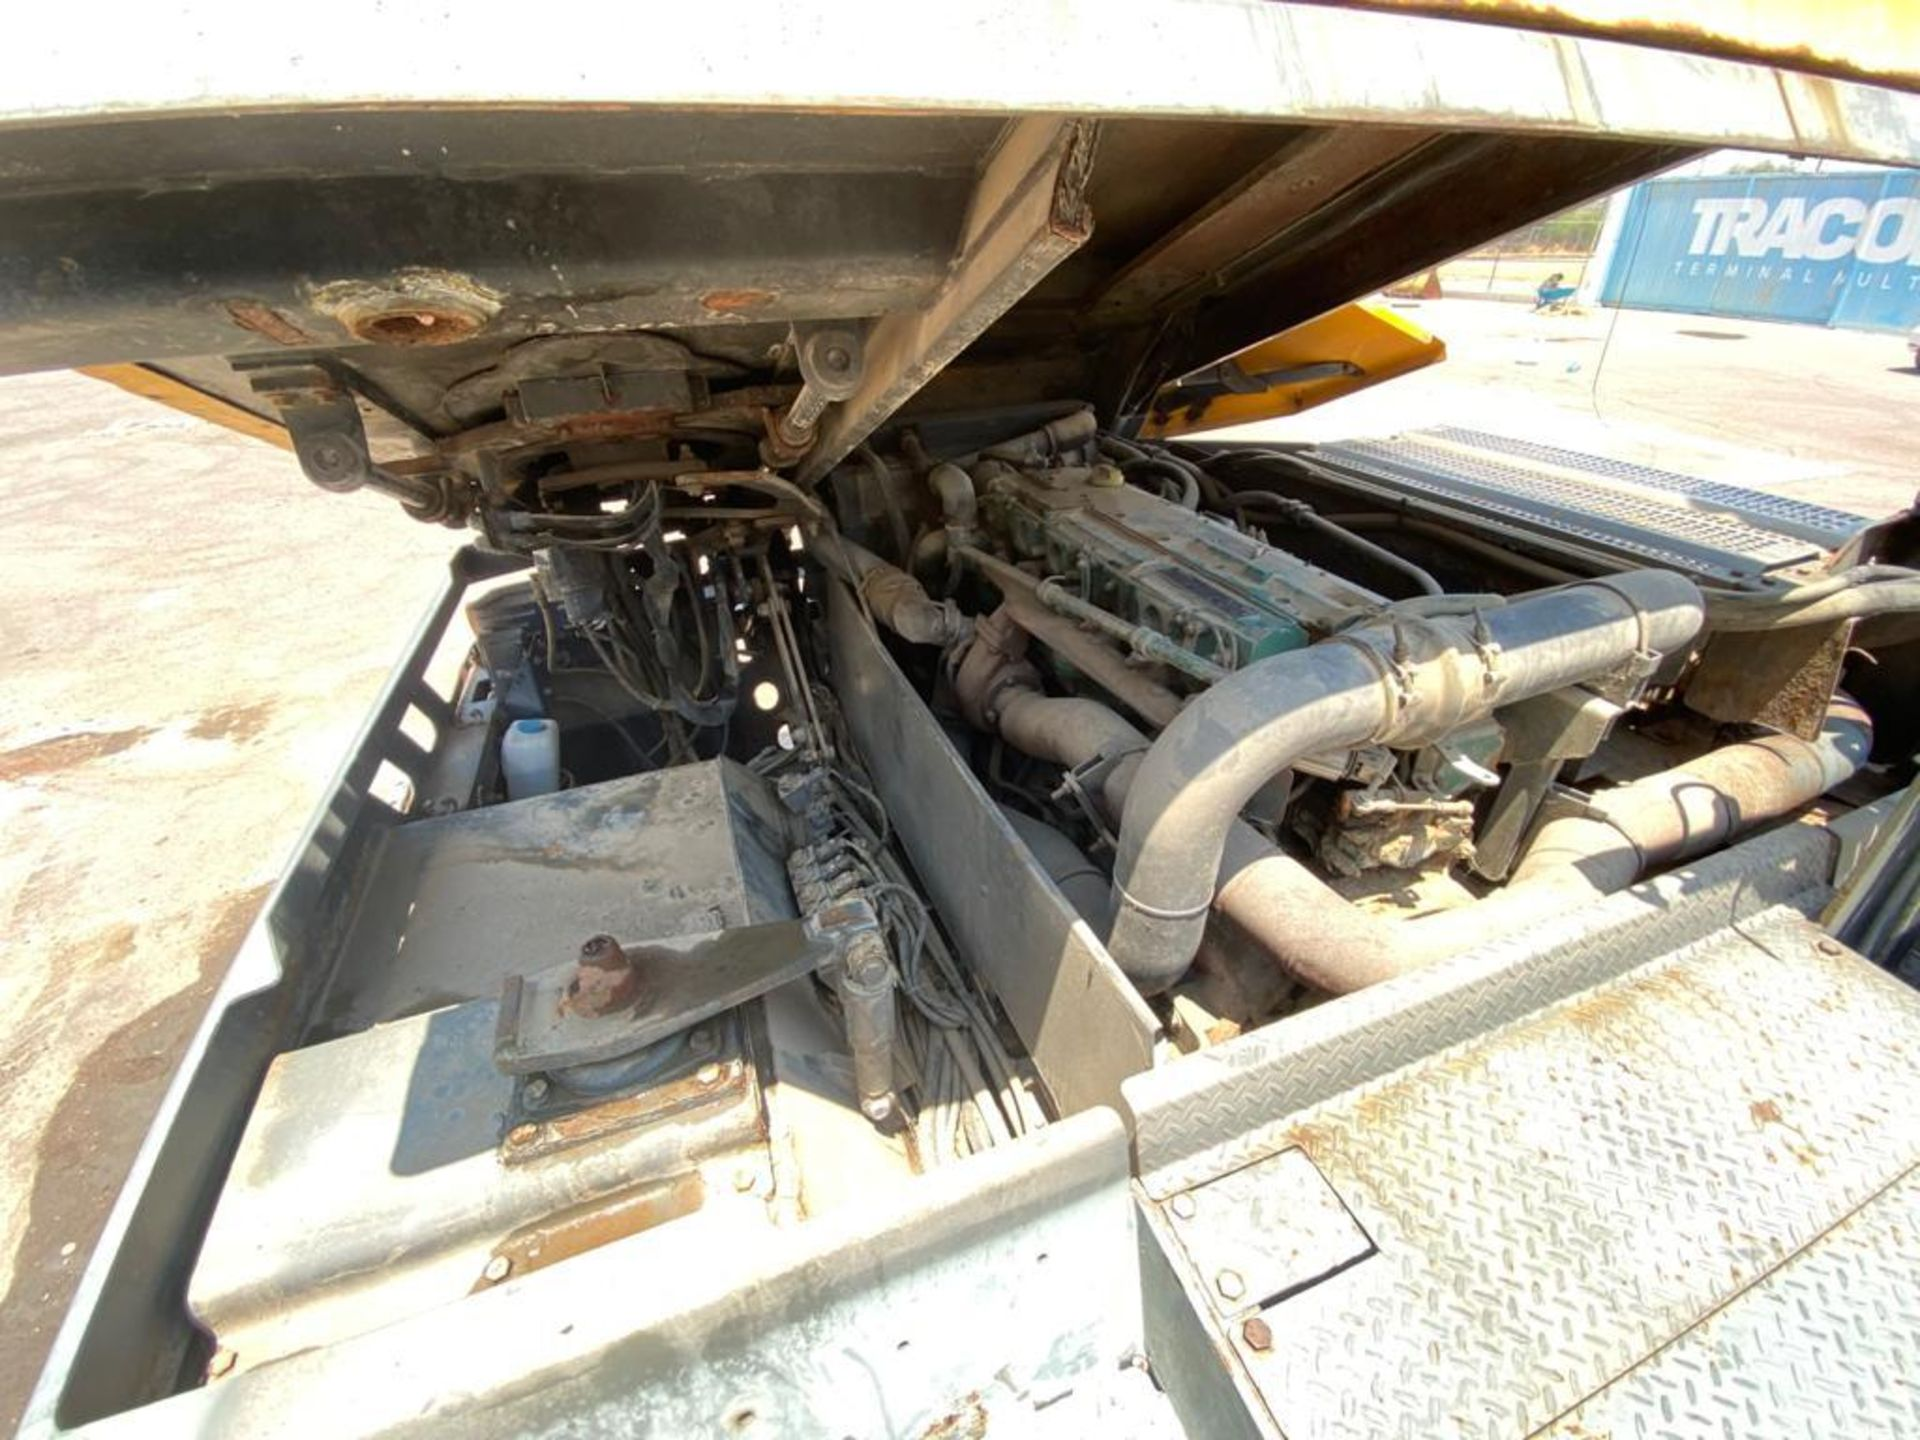 Terberg Capacity 2002 Terminal Tractor, automatic transmission, with Volvo motor - Image 51 of 57